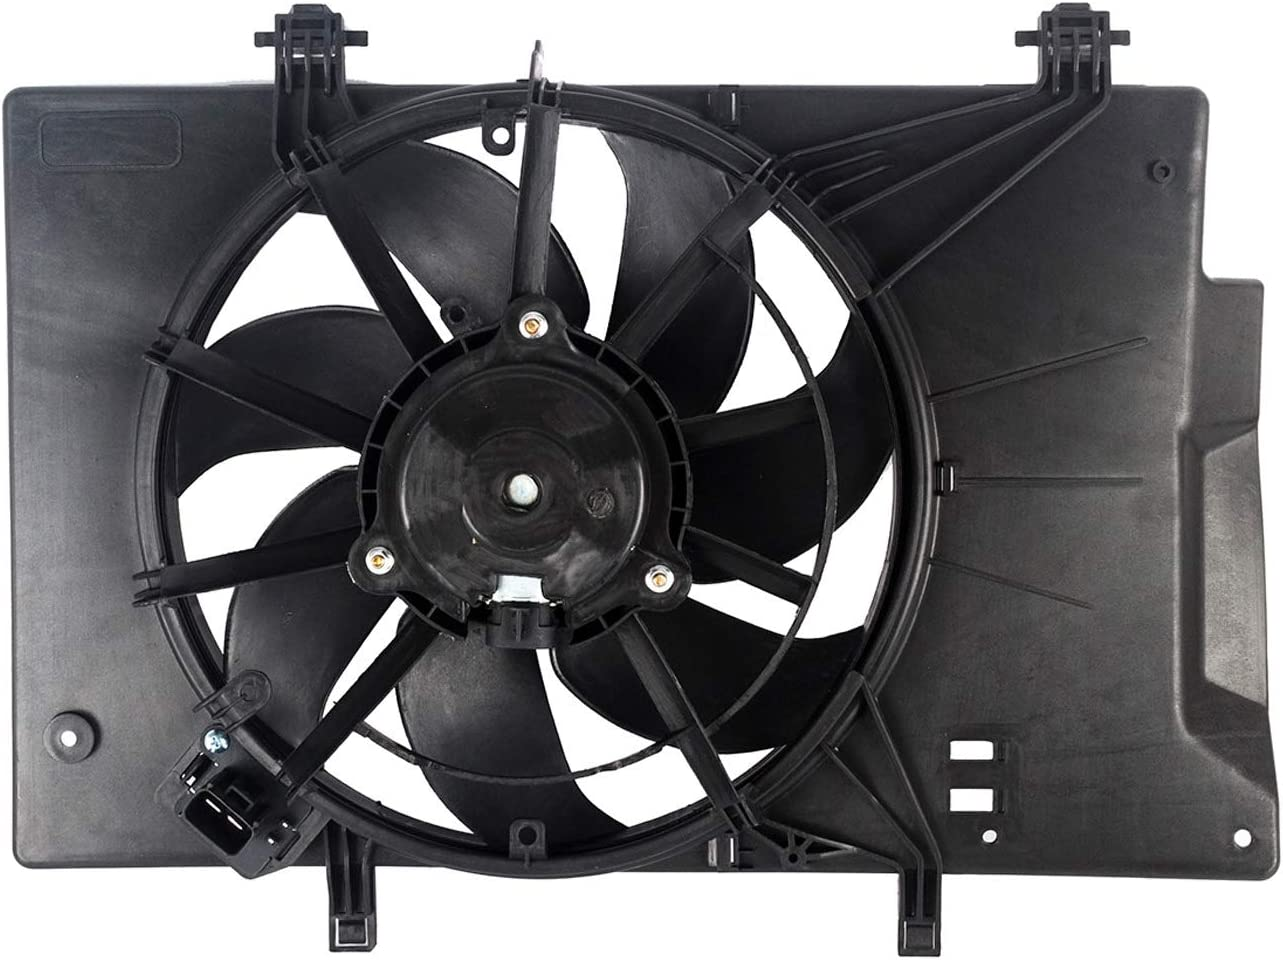 KARPAL Engine Cooling Fan Assembly BE8Z8C607A Compatible With 2011-2018 Ford Fiesta